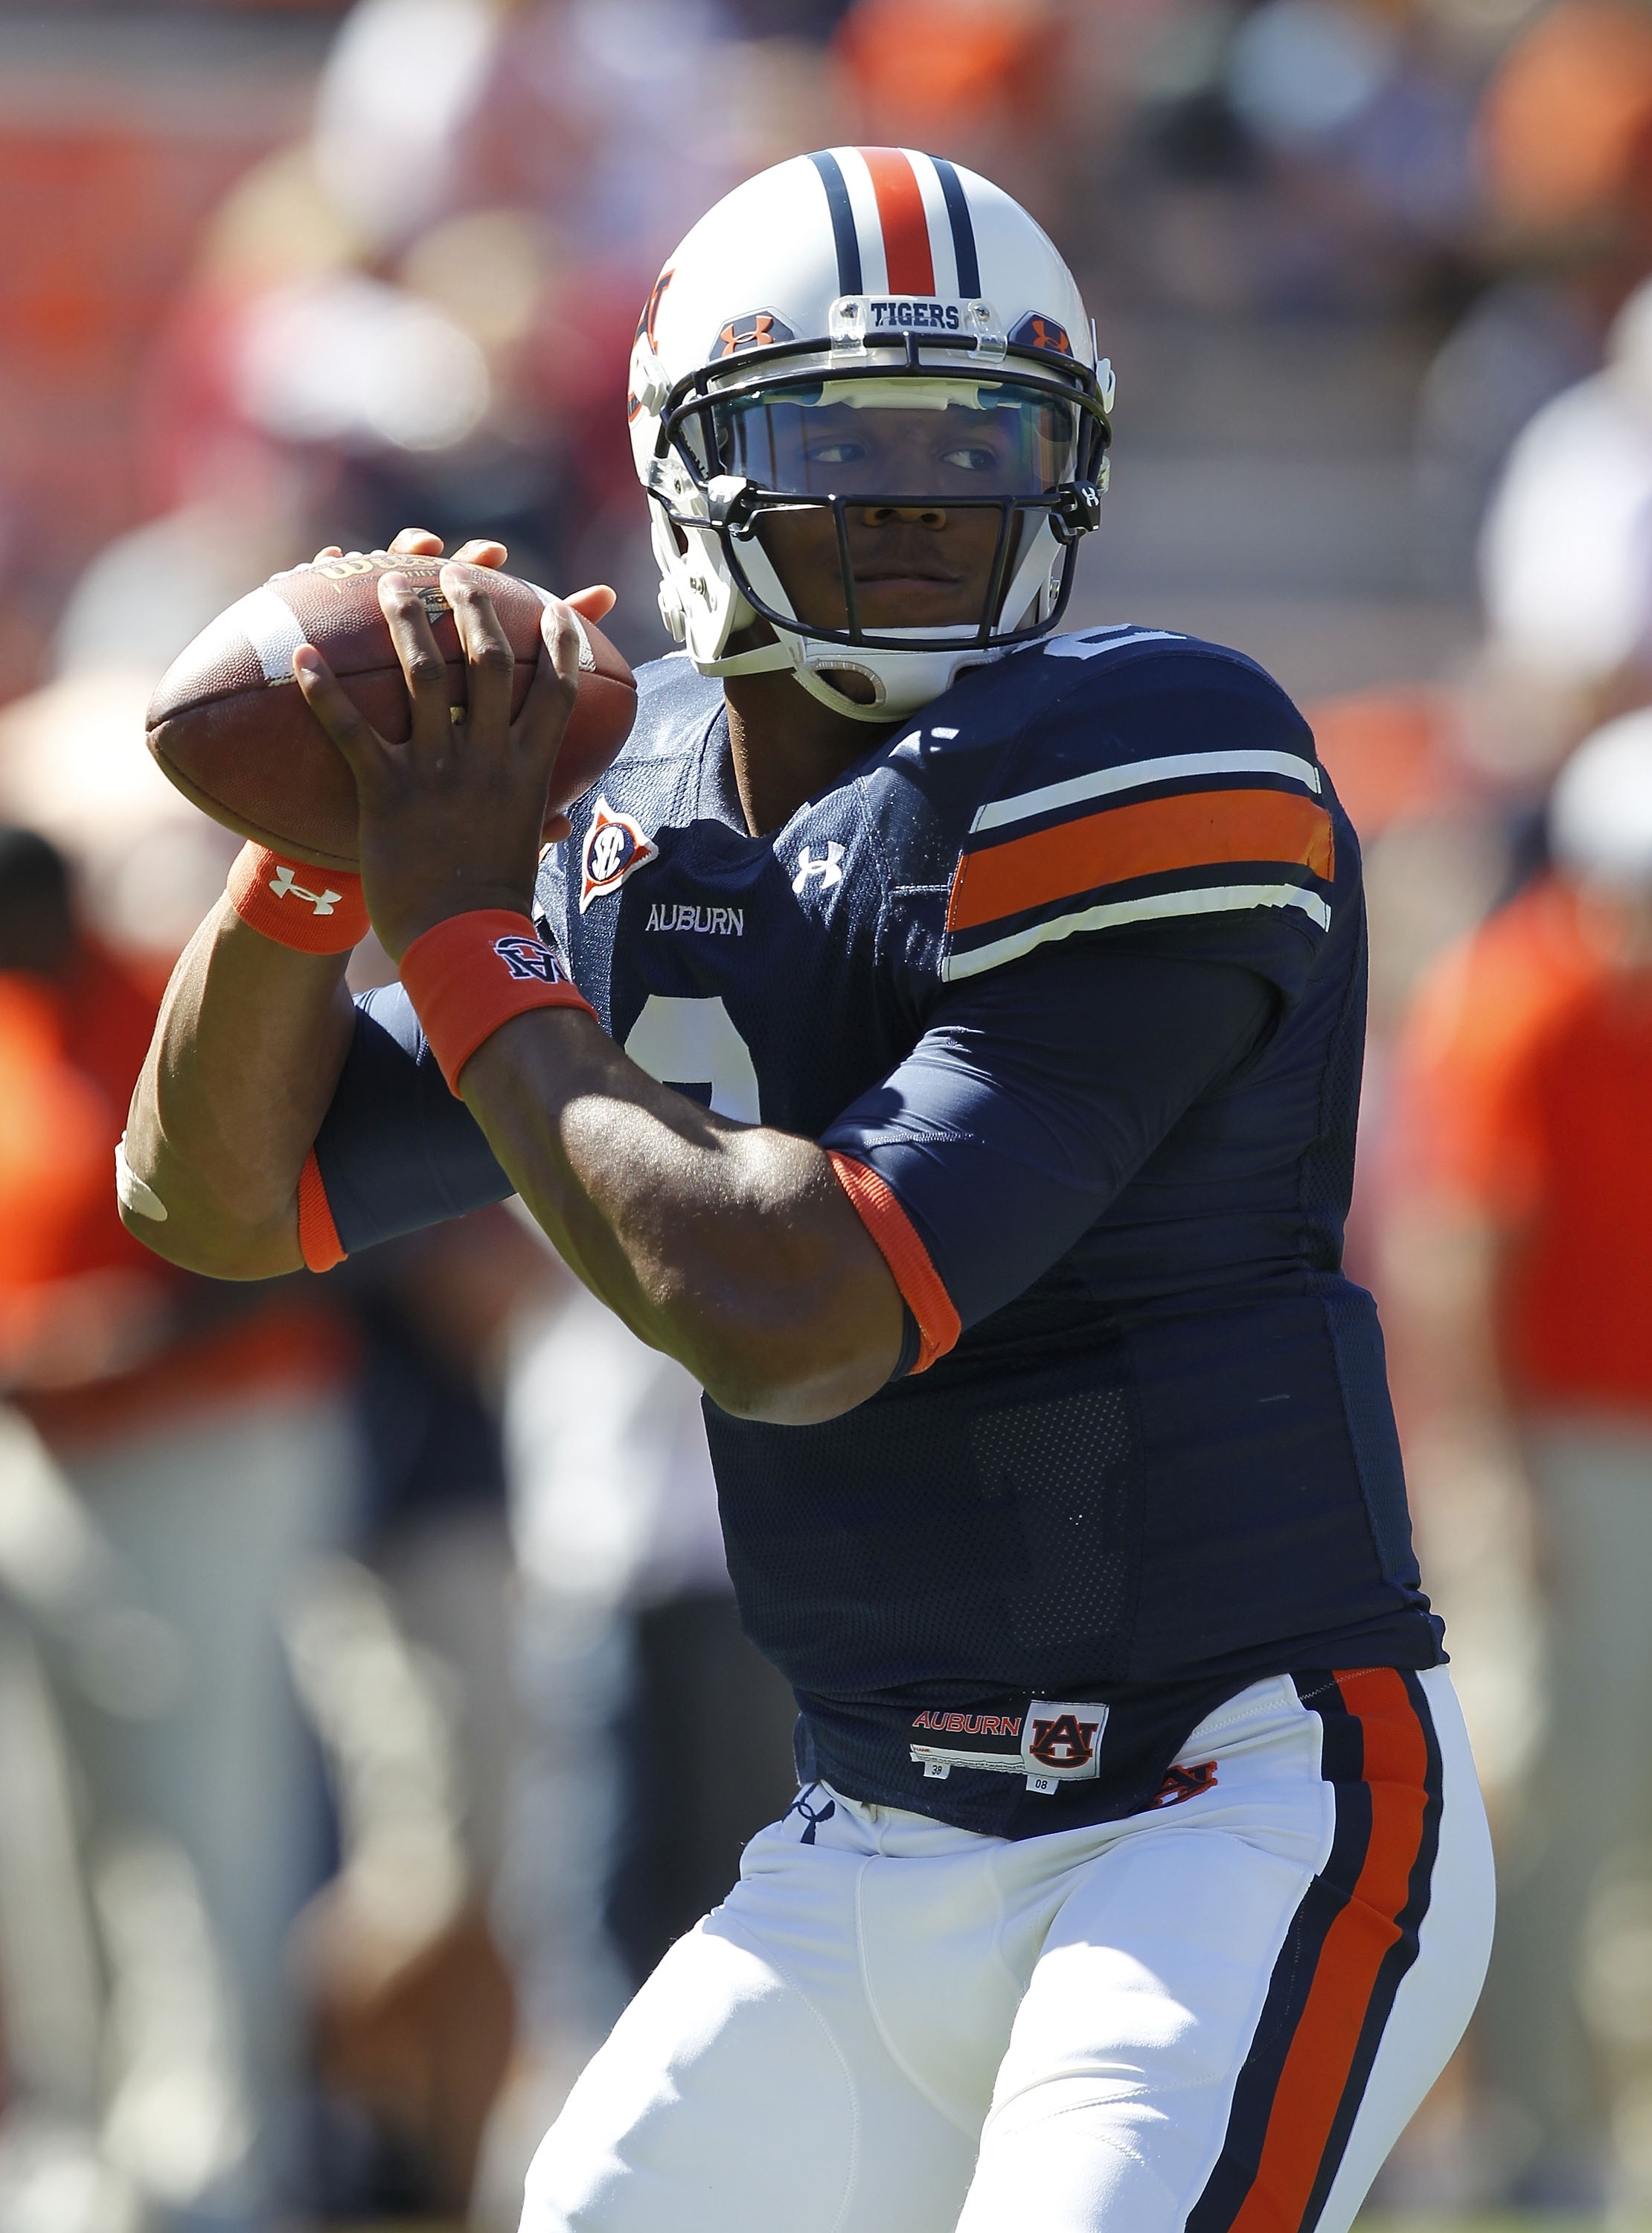 AUBURN, AL - OCTOBER 16:  Quarterback Cam Newton #2 of the Auburn Tigers drops back to throw a practice pass before the game against the Arkansas Razorbacks at Jordan-Hare Stadium on October 16, 2010 in Auburn, Alabama.  (Photo by Mike Zarrilli/Getty Imag